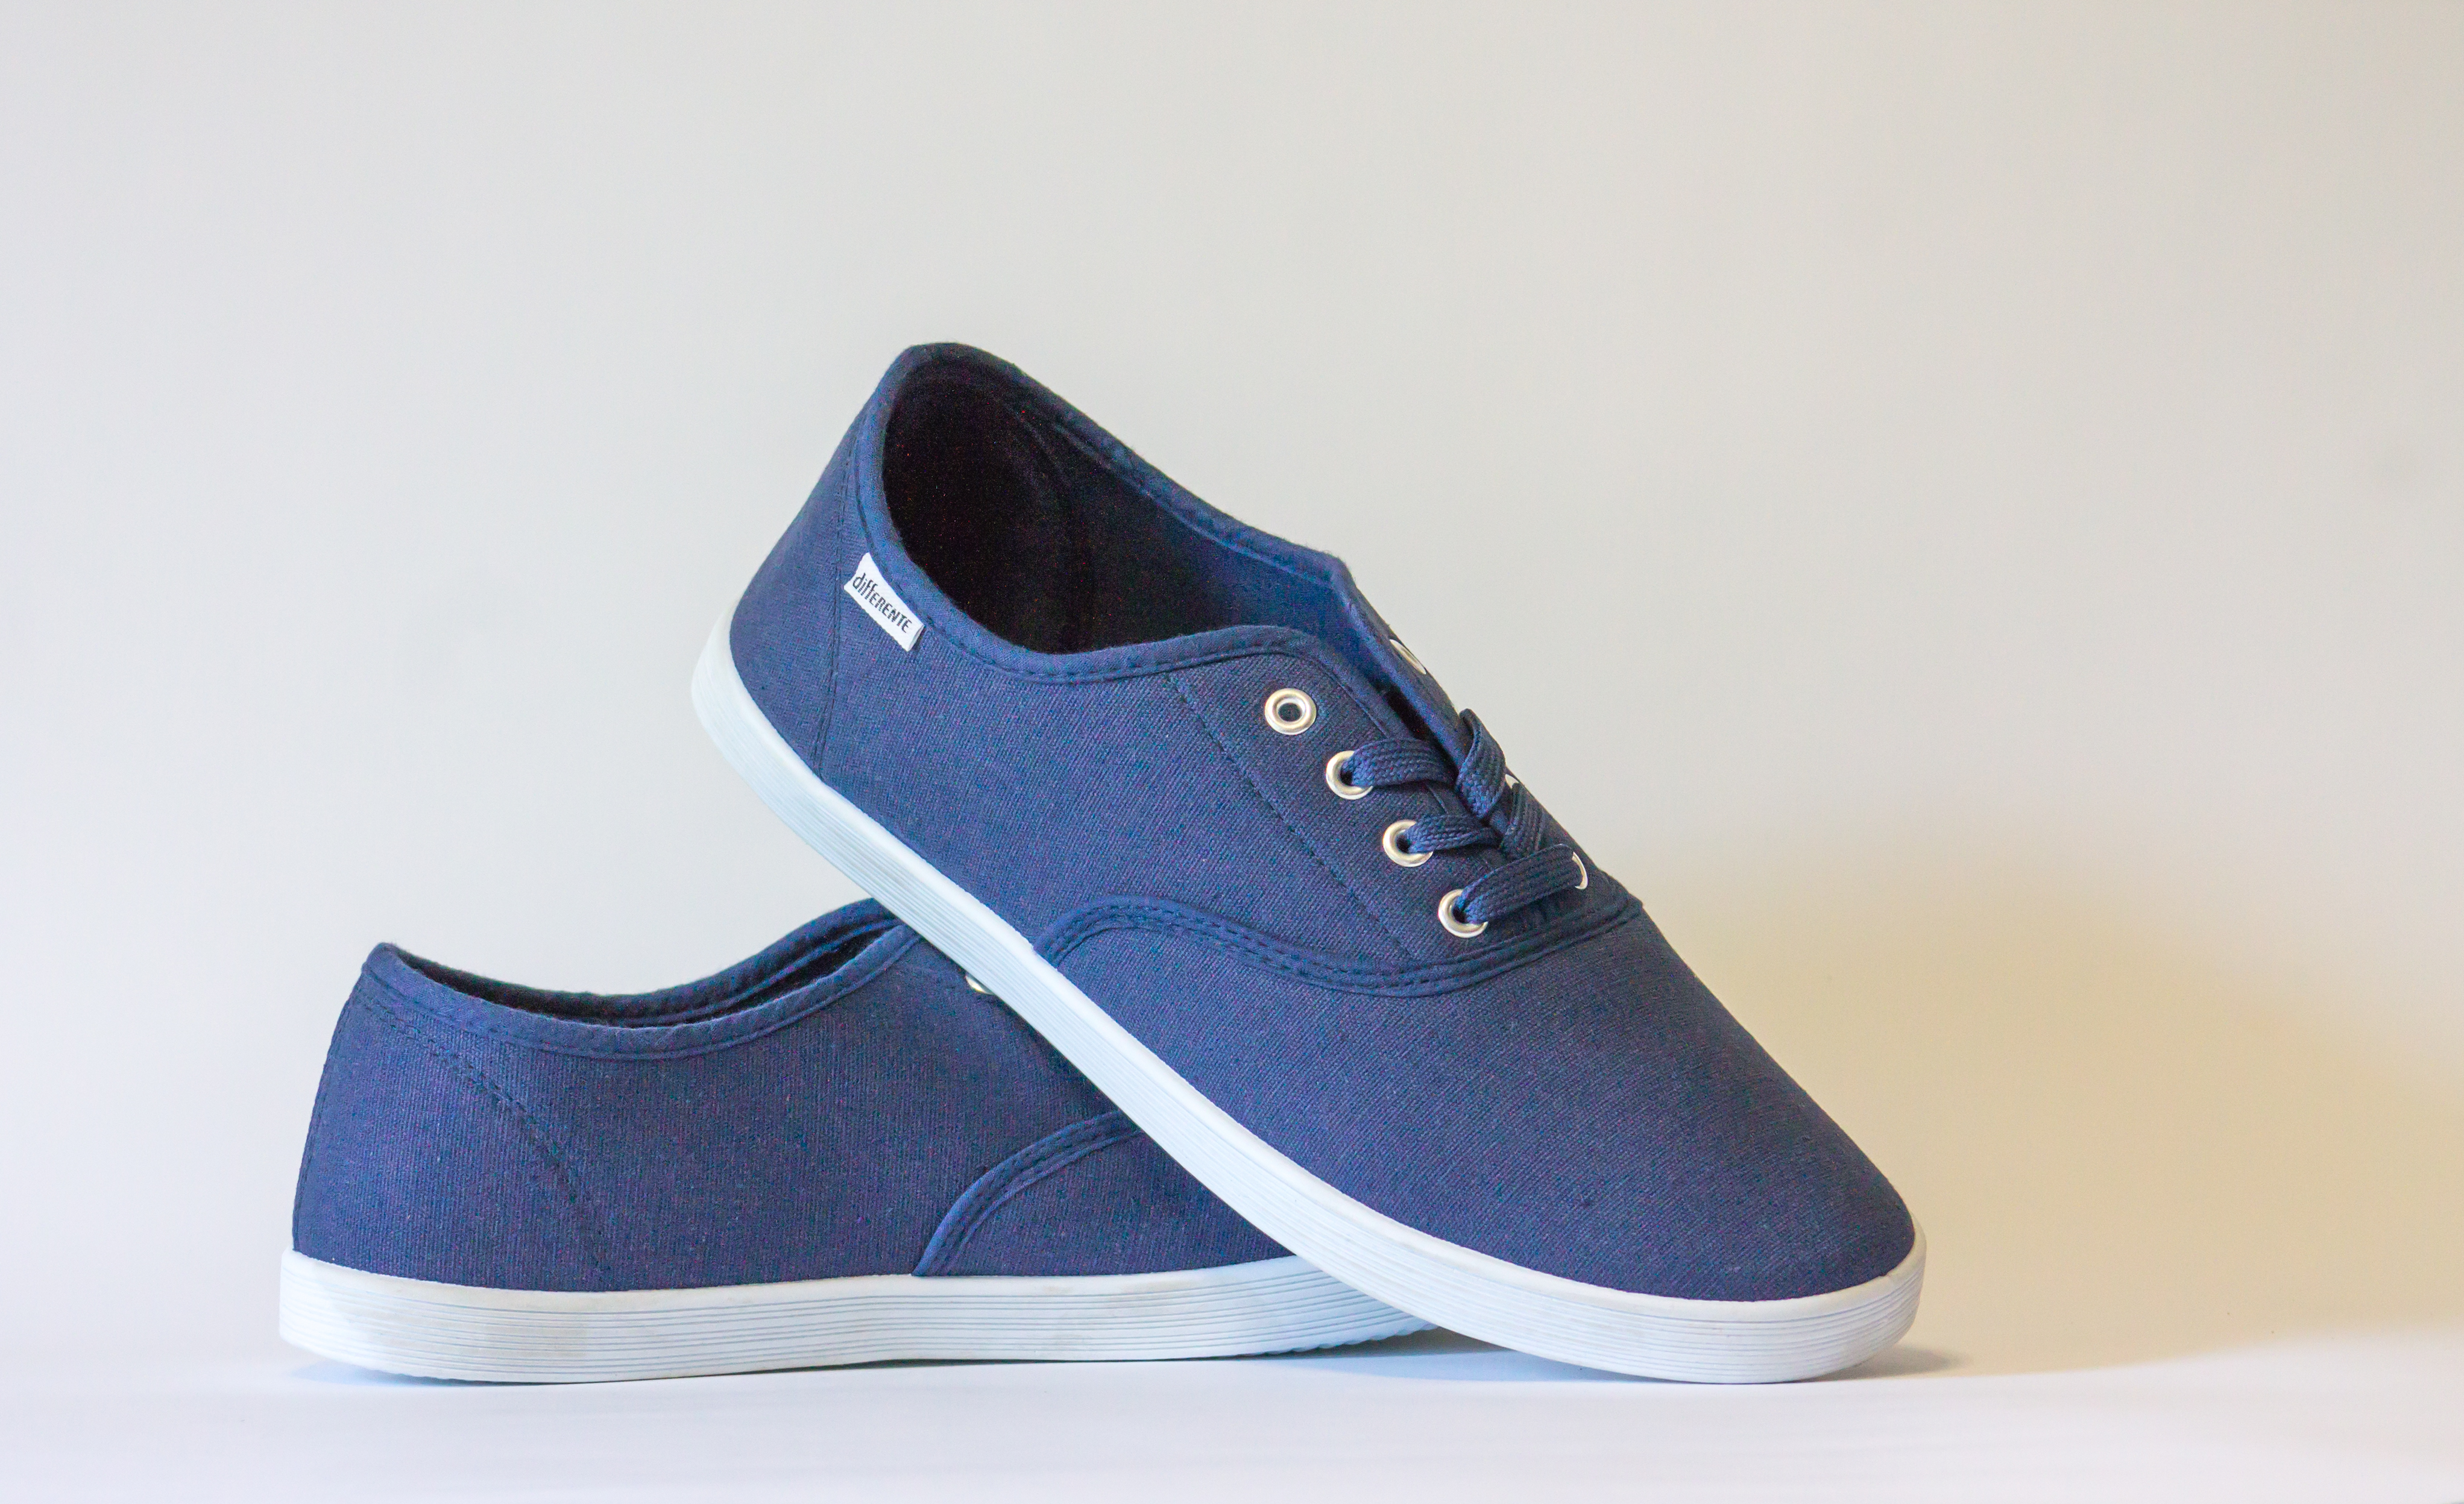 Pair Of Blue Lace Up Sneakers Free